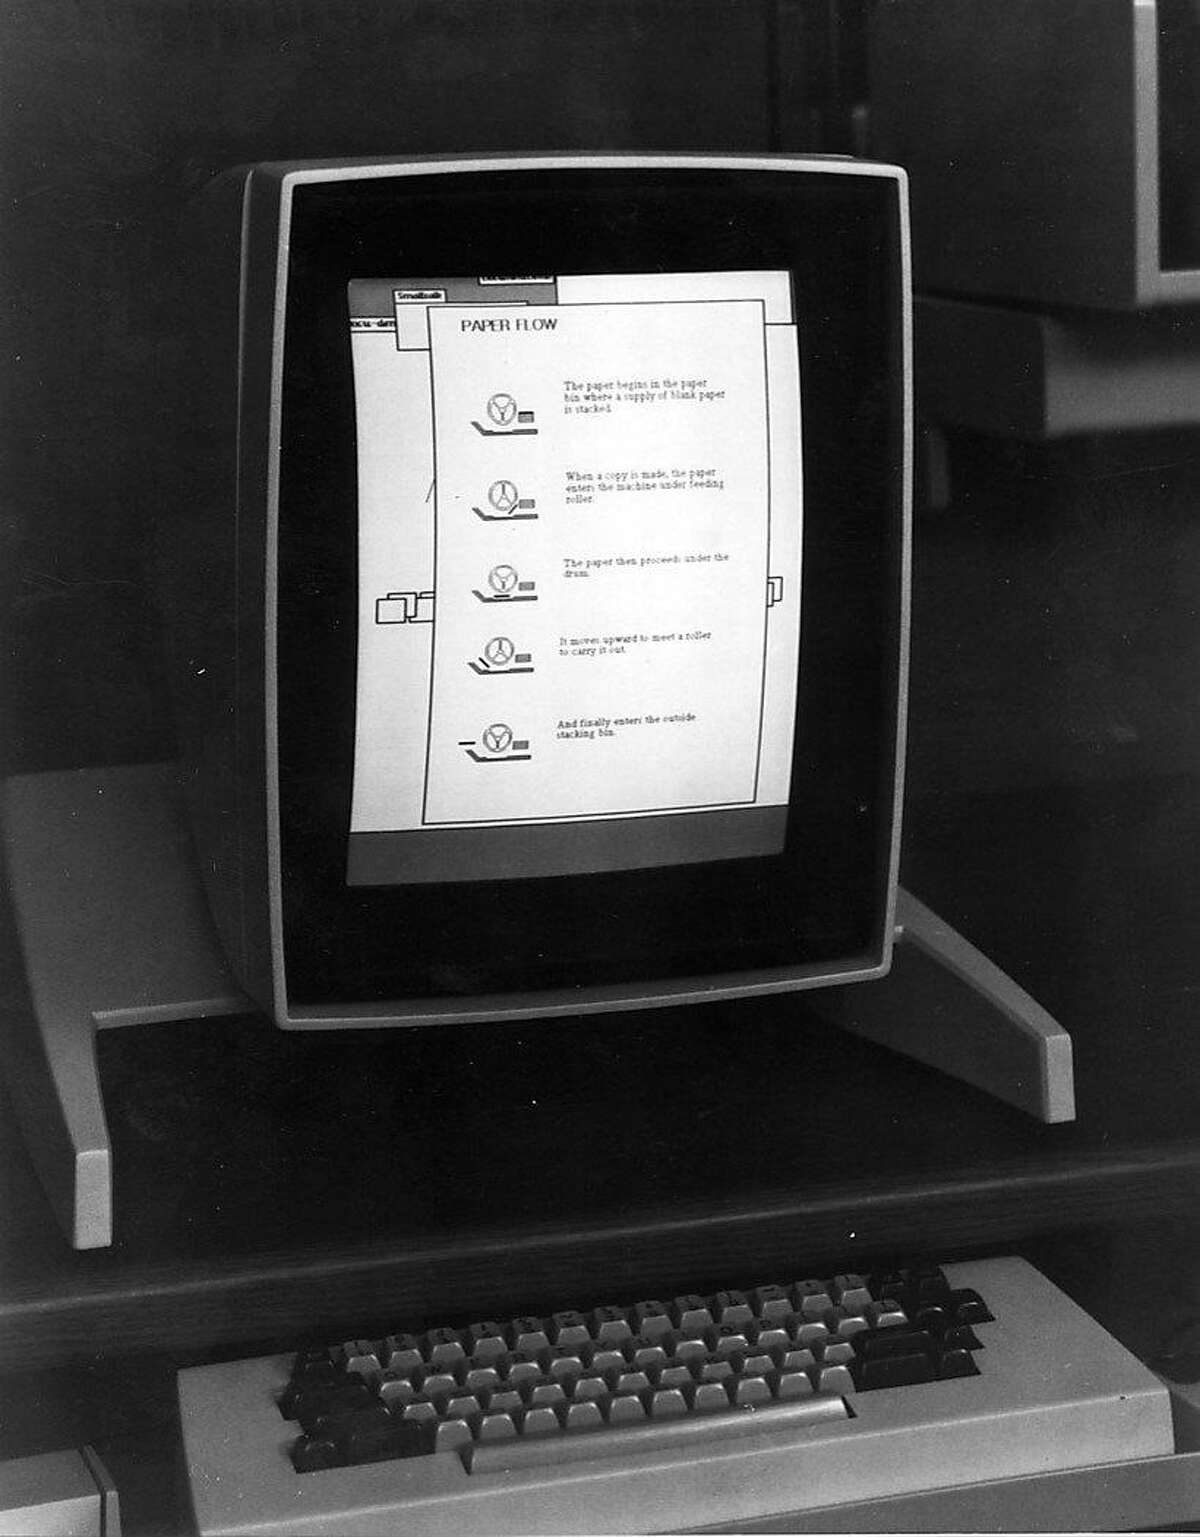 The Alto, left, was the world's first personal computer, developed with a graphical user interface in 1973 -- although this version is the one from 1975. It is one of many projects from the Xerox Palo Alto Research Center.